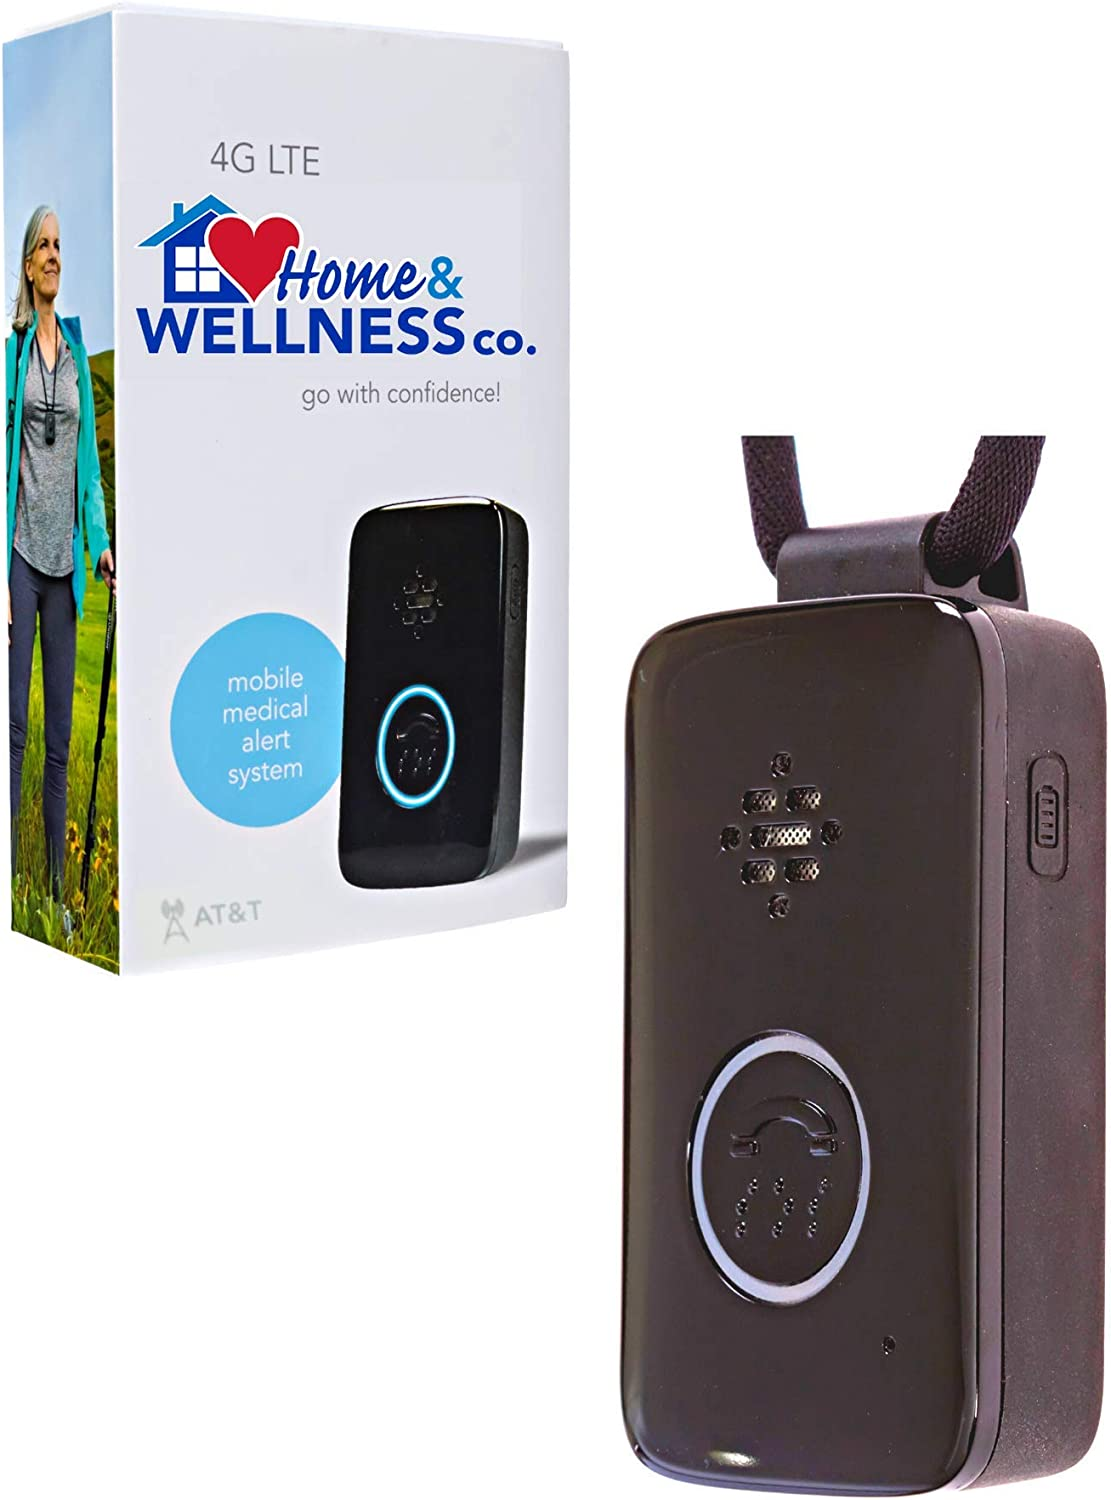 Home&Wellness GPS Medical Alert Device, No Fall Detection, 4 Months Service Included.